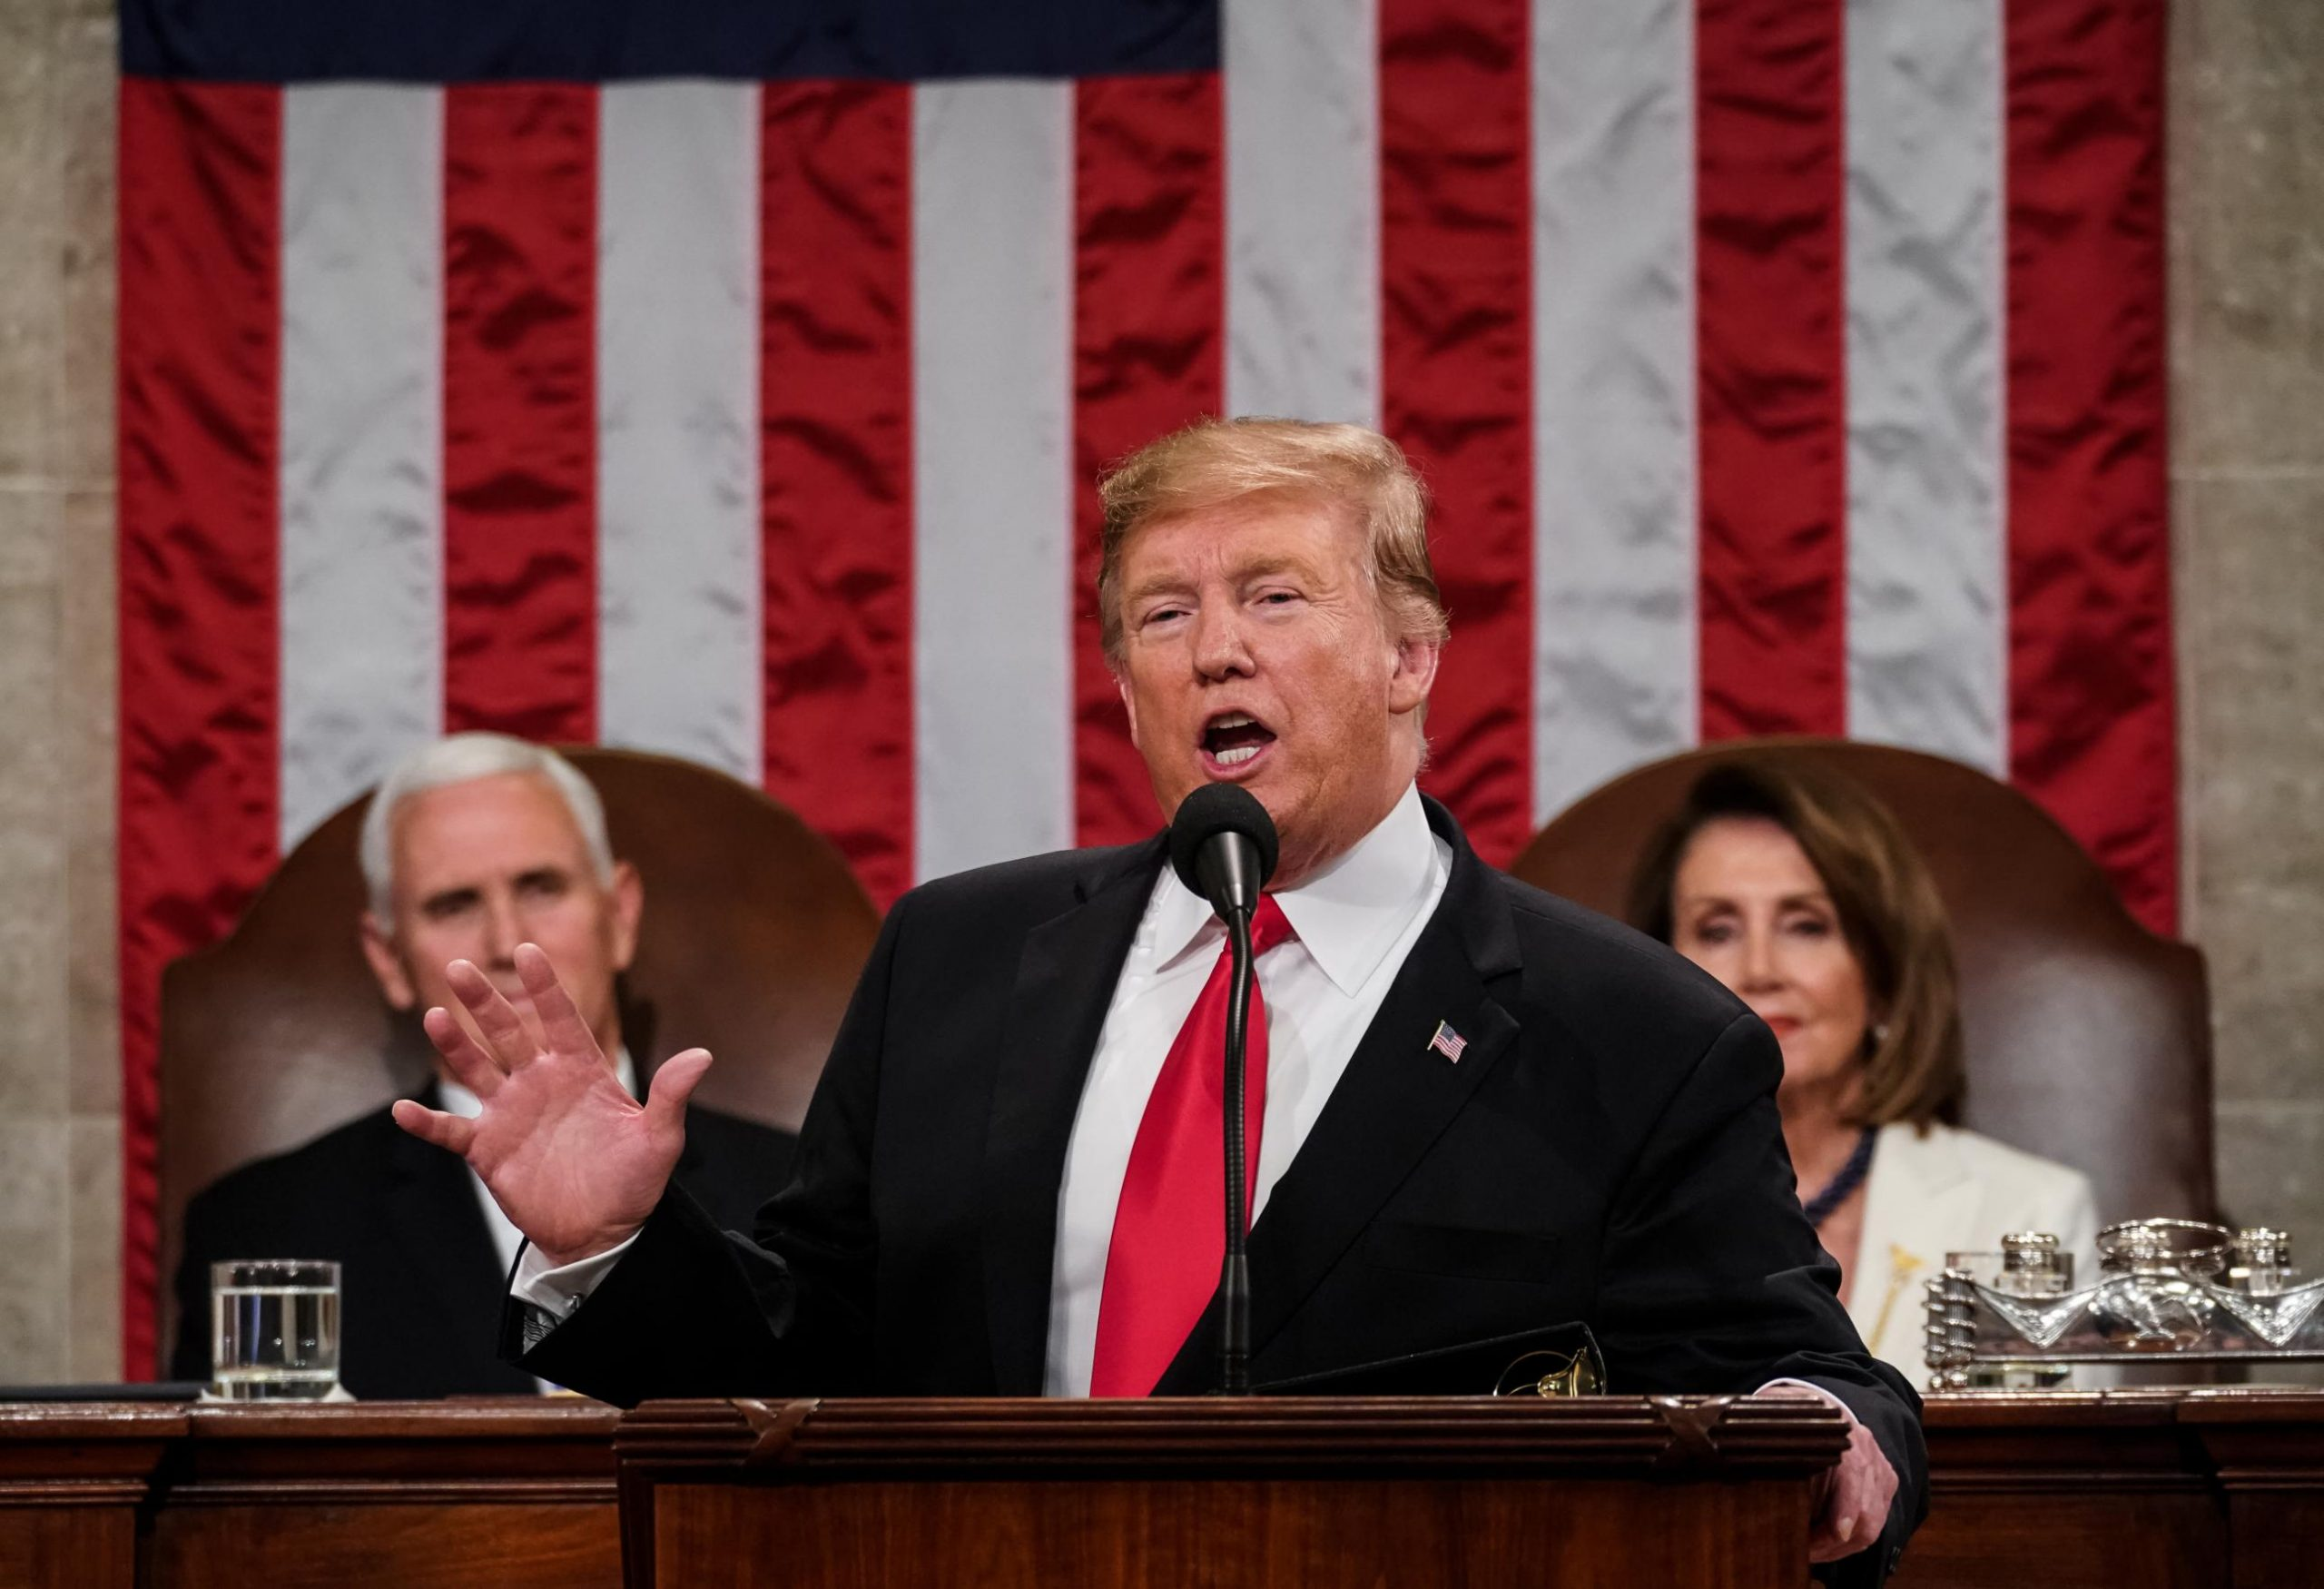 Donald Trump, State of the Union Address, CNN, Reality tv ratings, Vanderpump Rules, Tuesday, February 4, 2020